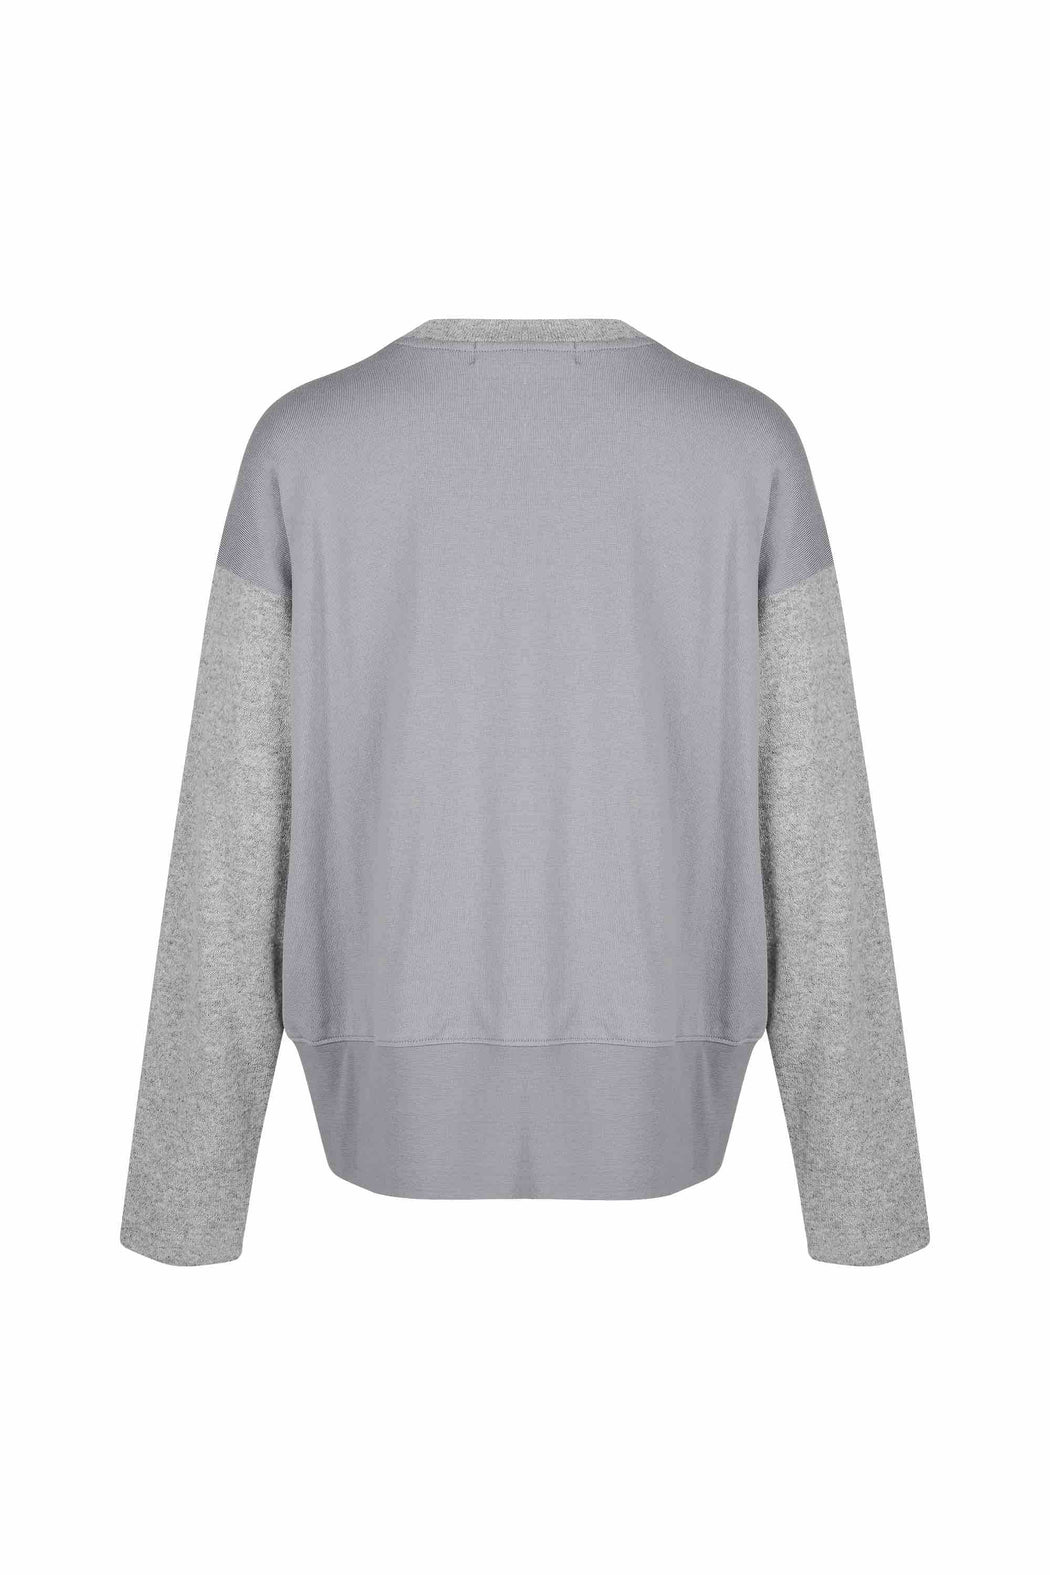 Back view of Women Fabric Block Sweater, made with Organic Cotton and wool blends in grey/melange grey